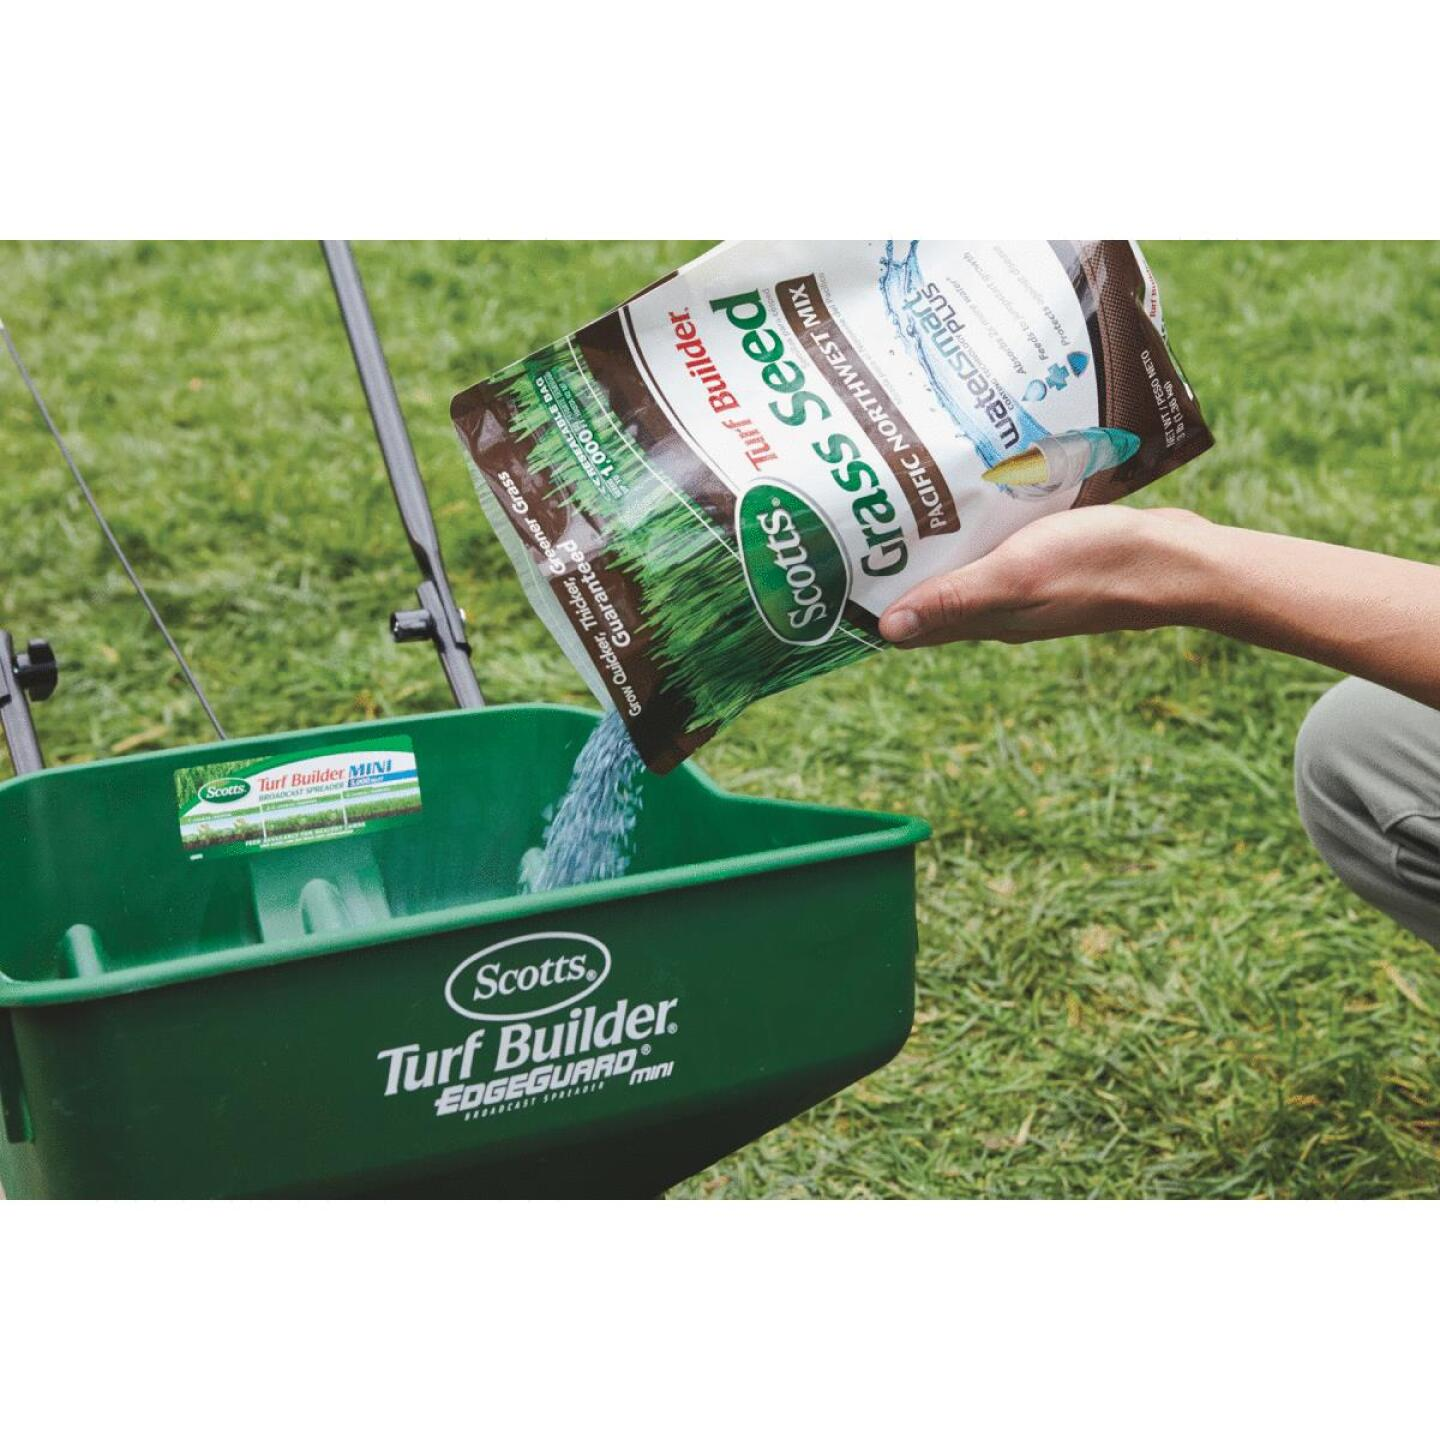 Scotts Turf Builder 3 Lb. Up To 1000 Sq. Ft. Coverage Pacific Northwest Grass Seed Image 3